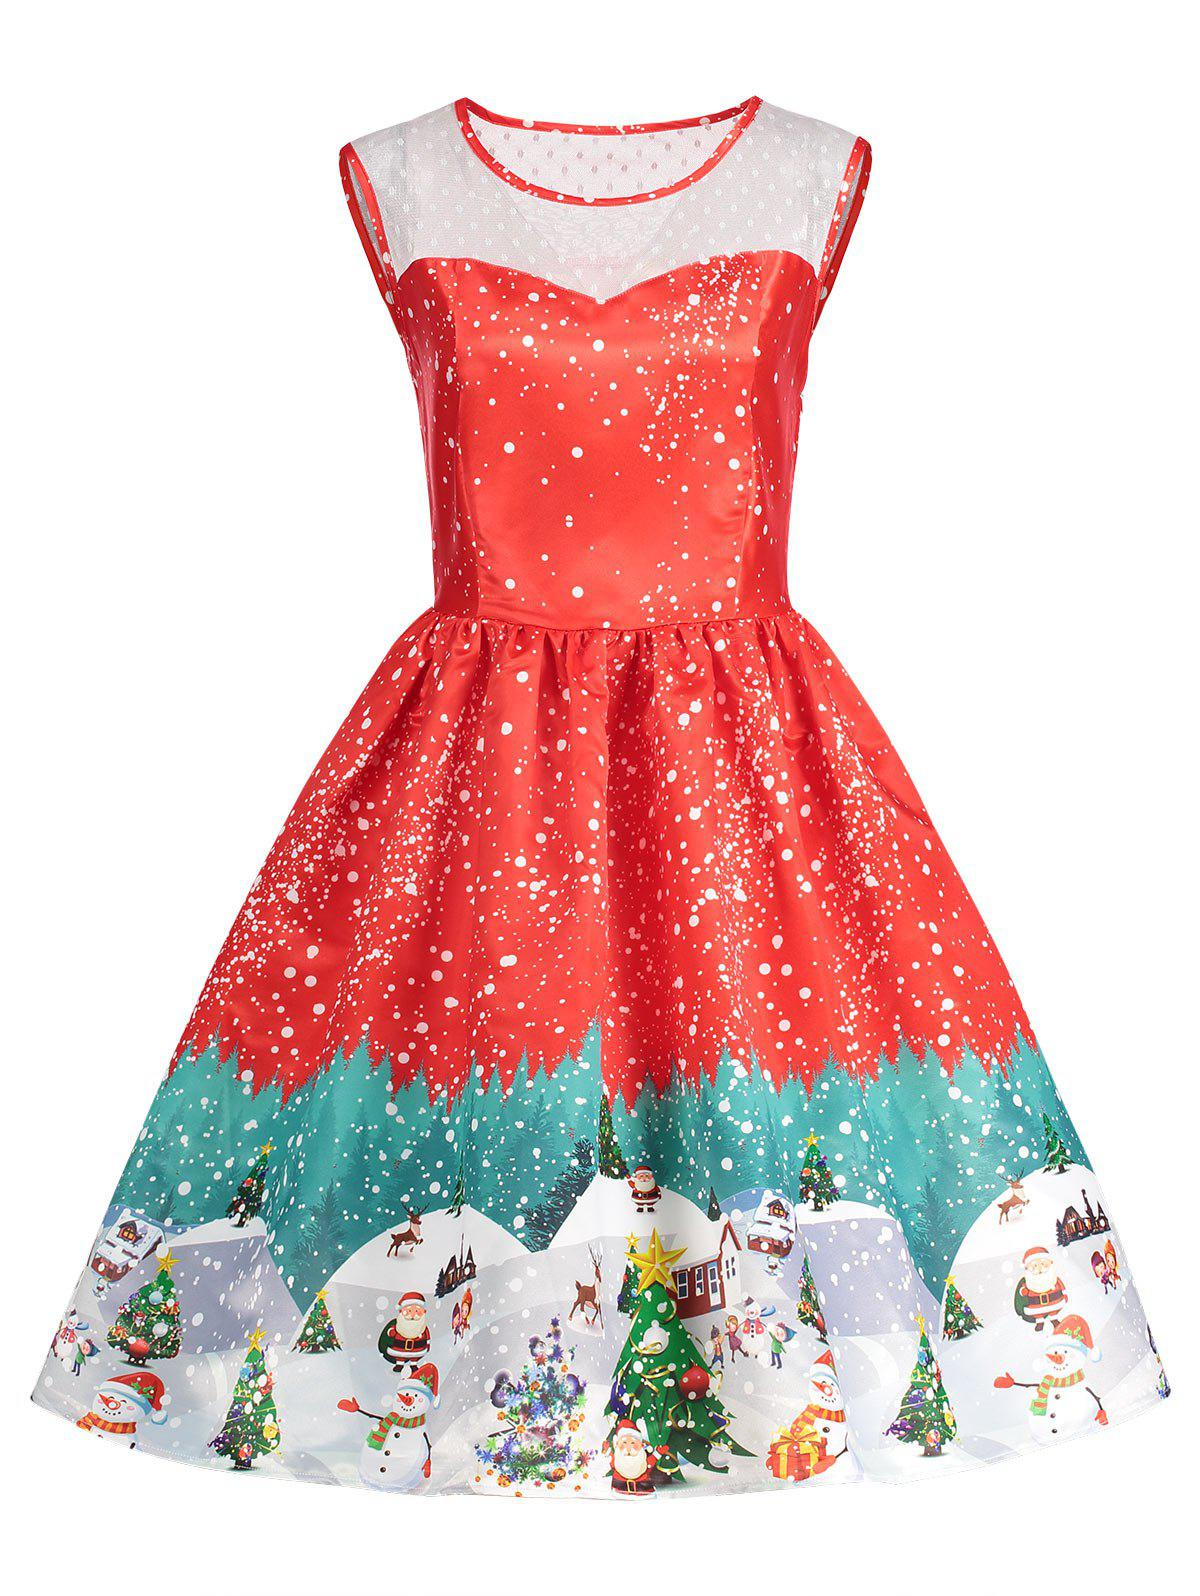 Sleeveless Christmas Print Vintage DressWOMEN<br><br>Size: L; Color: RED; Style: Vintage; Material: Polyester; Silhouette: A-Line; Dresses Length: Mid-Calf; Neckline: Round Collar; Sleeve Length: Sleeveless; Pattern Type: Print; With Belt: No; Season: Fall,Spring,Summer; Weight: 0.3500kg; Package Contents: 1 x Dress;